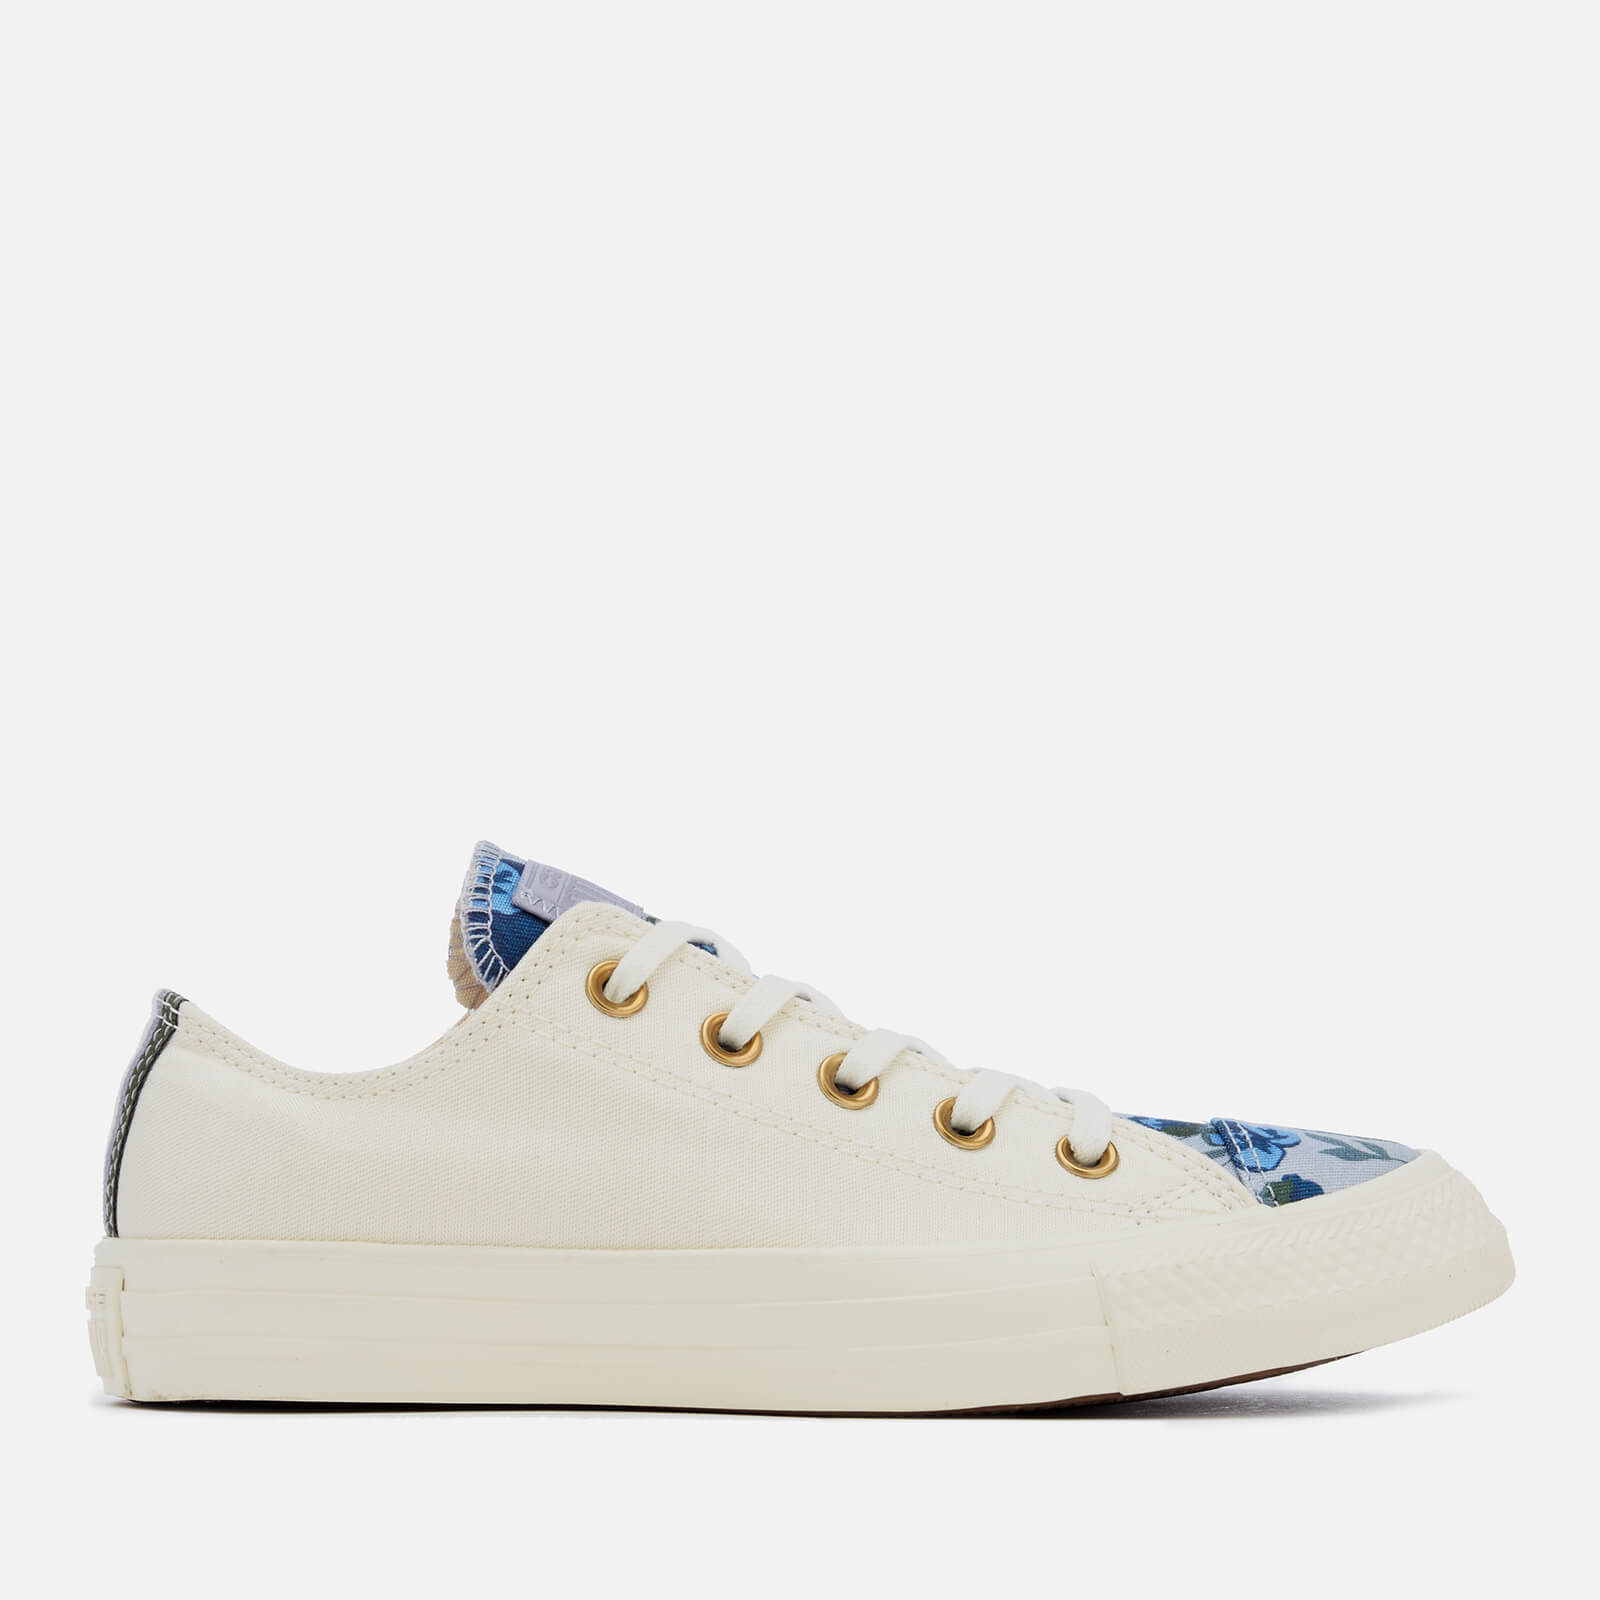 c07fffcded27 Converse Women s Chuck Taylor All Star Ox Trainers - Egret Provence ...